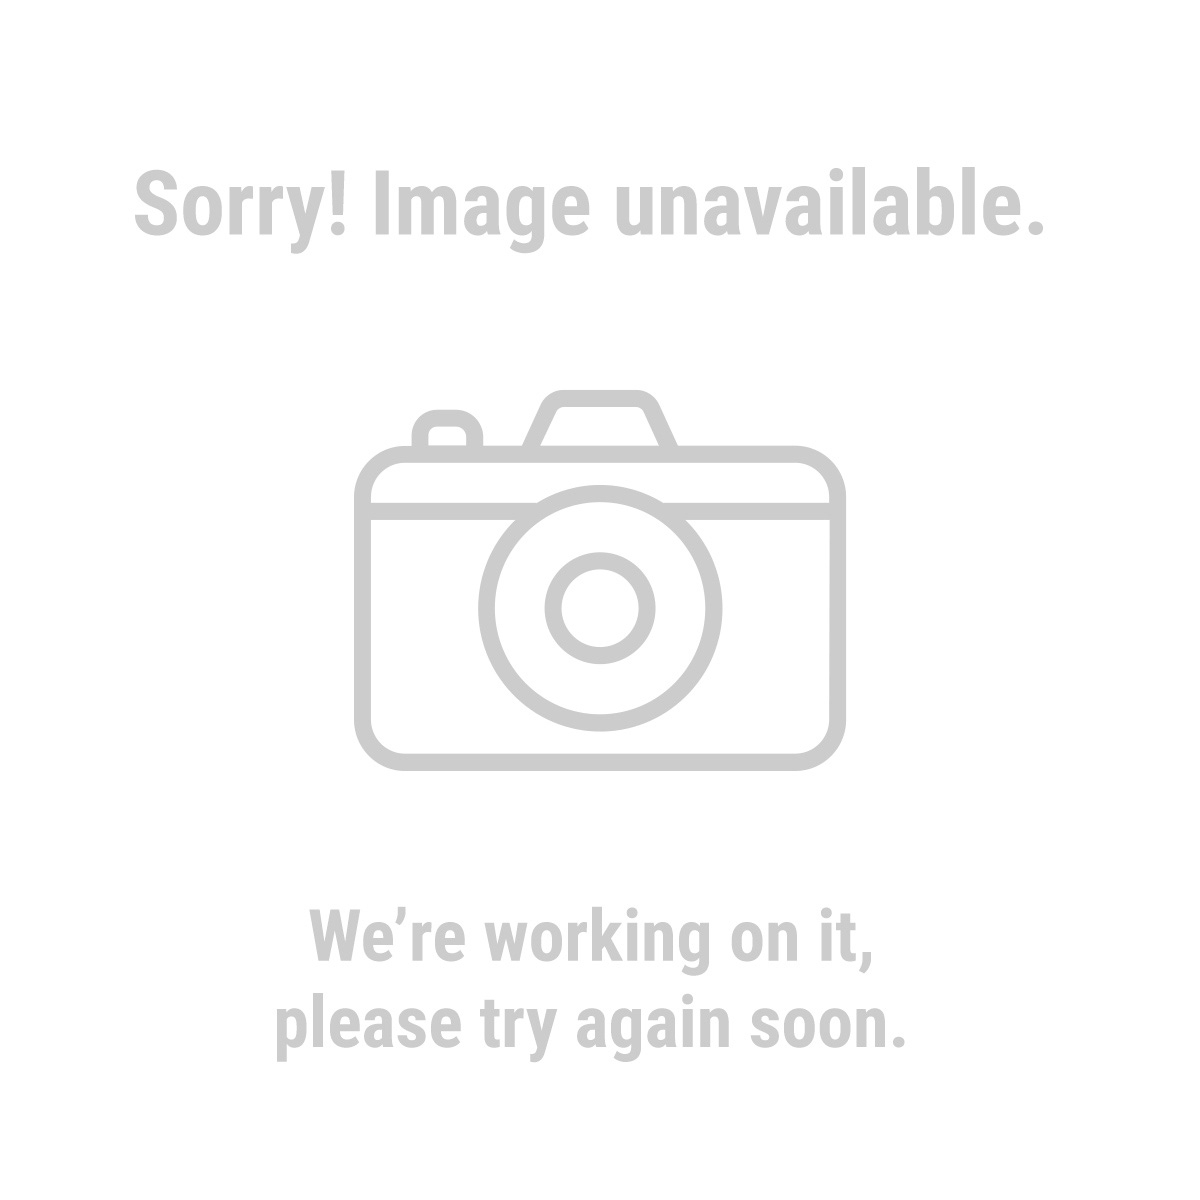 Benchtop wood lathe 5 speed benchtop router table with 1 34 hp router greentooth Gallery